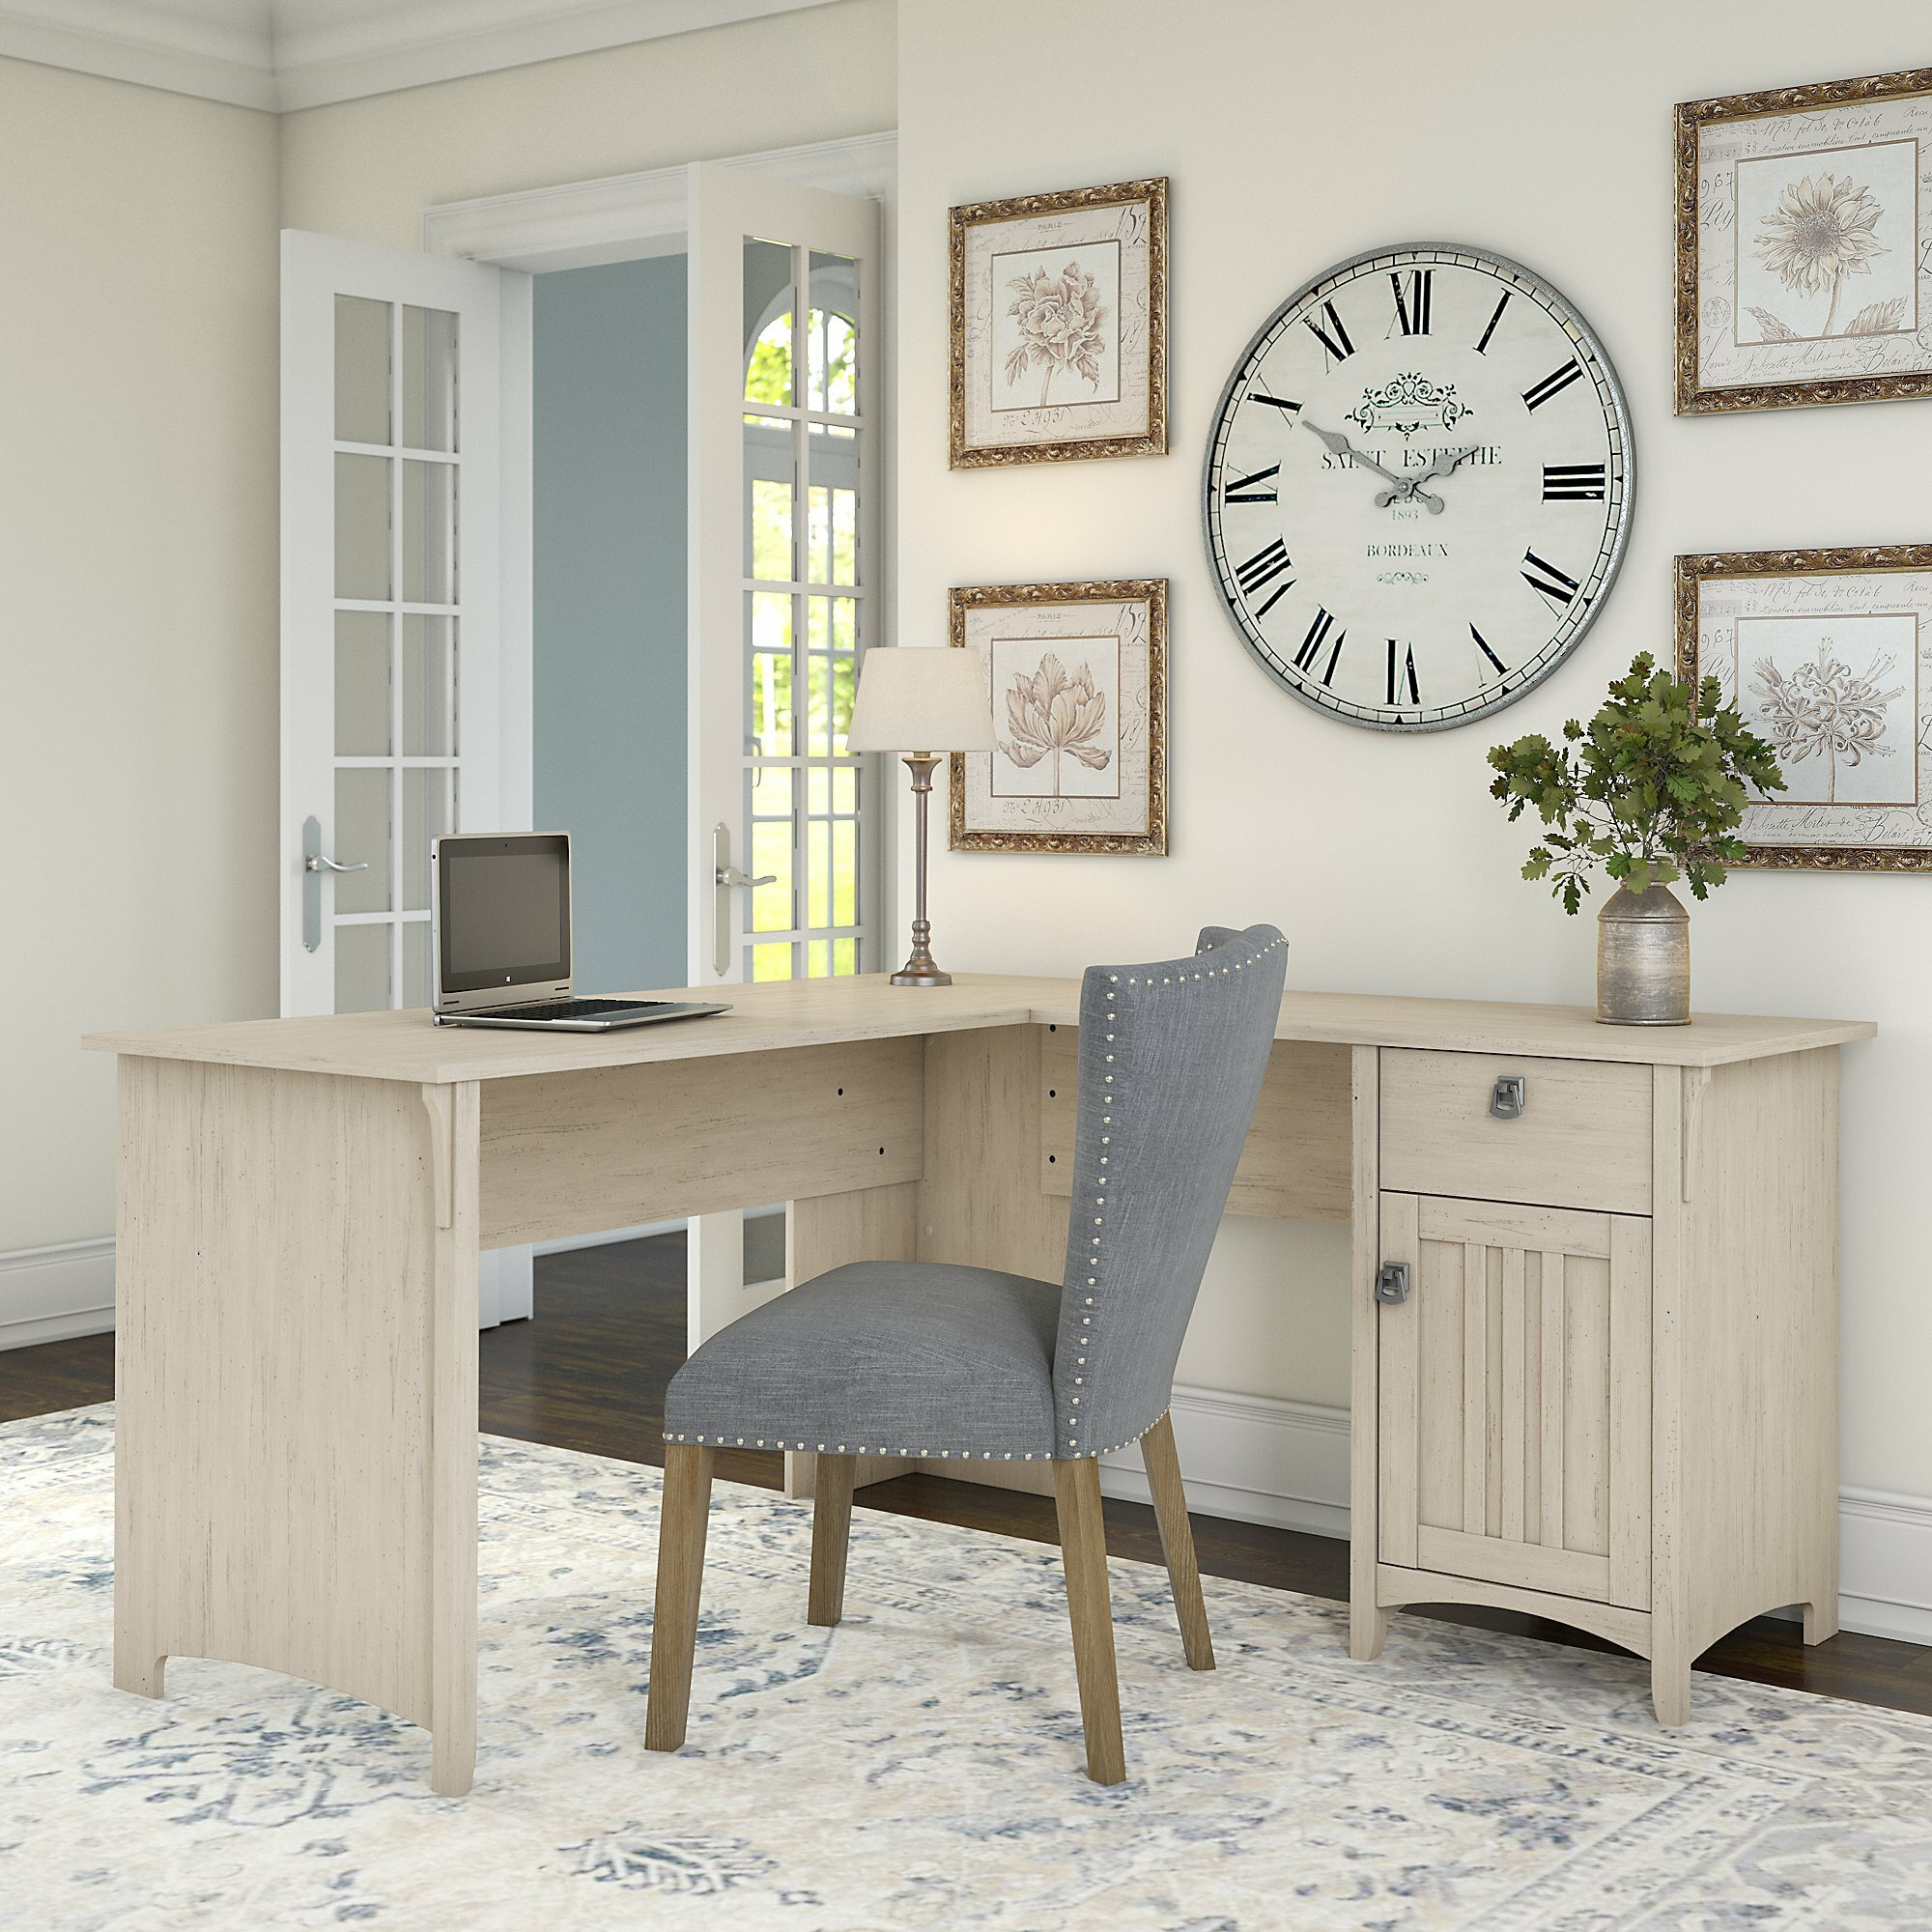 Awe Inspiring Farmhouse Desks Birch Lane Home Interior And Landscaping Oversignezvosmurscom